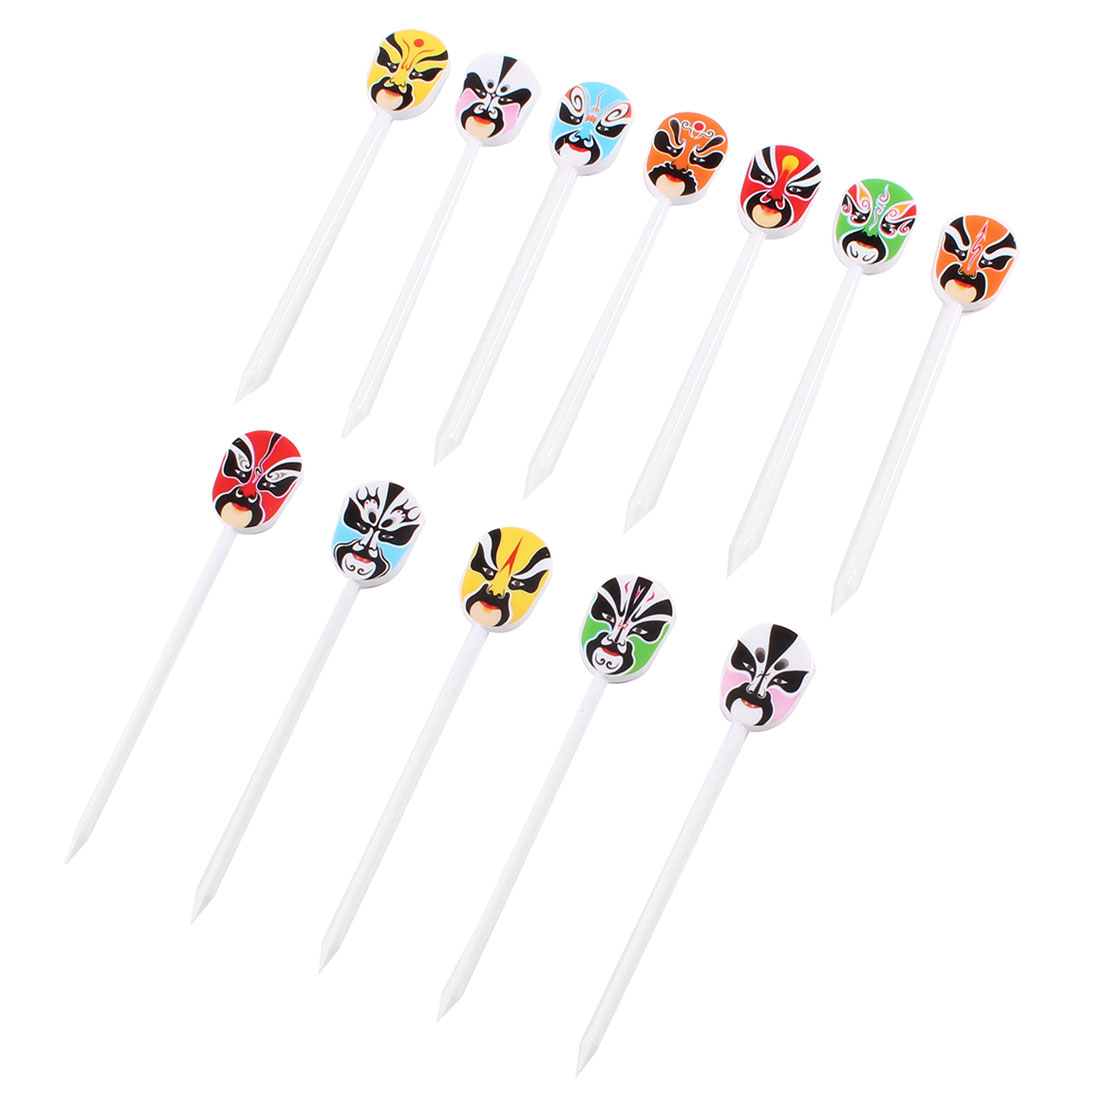 12 Pcs Colorful Plastic Operas Facial Design Food Fruit Fork Picks for Party